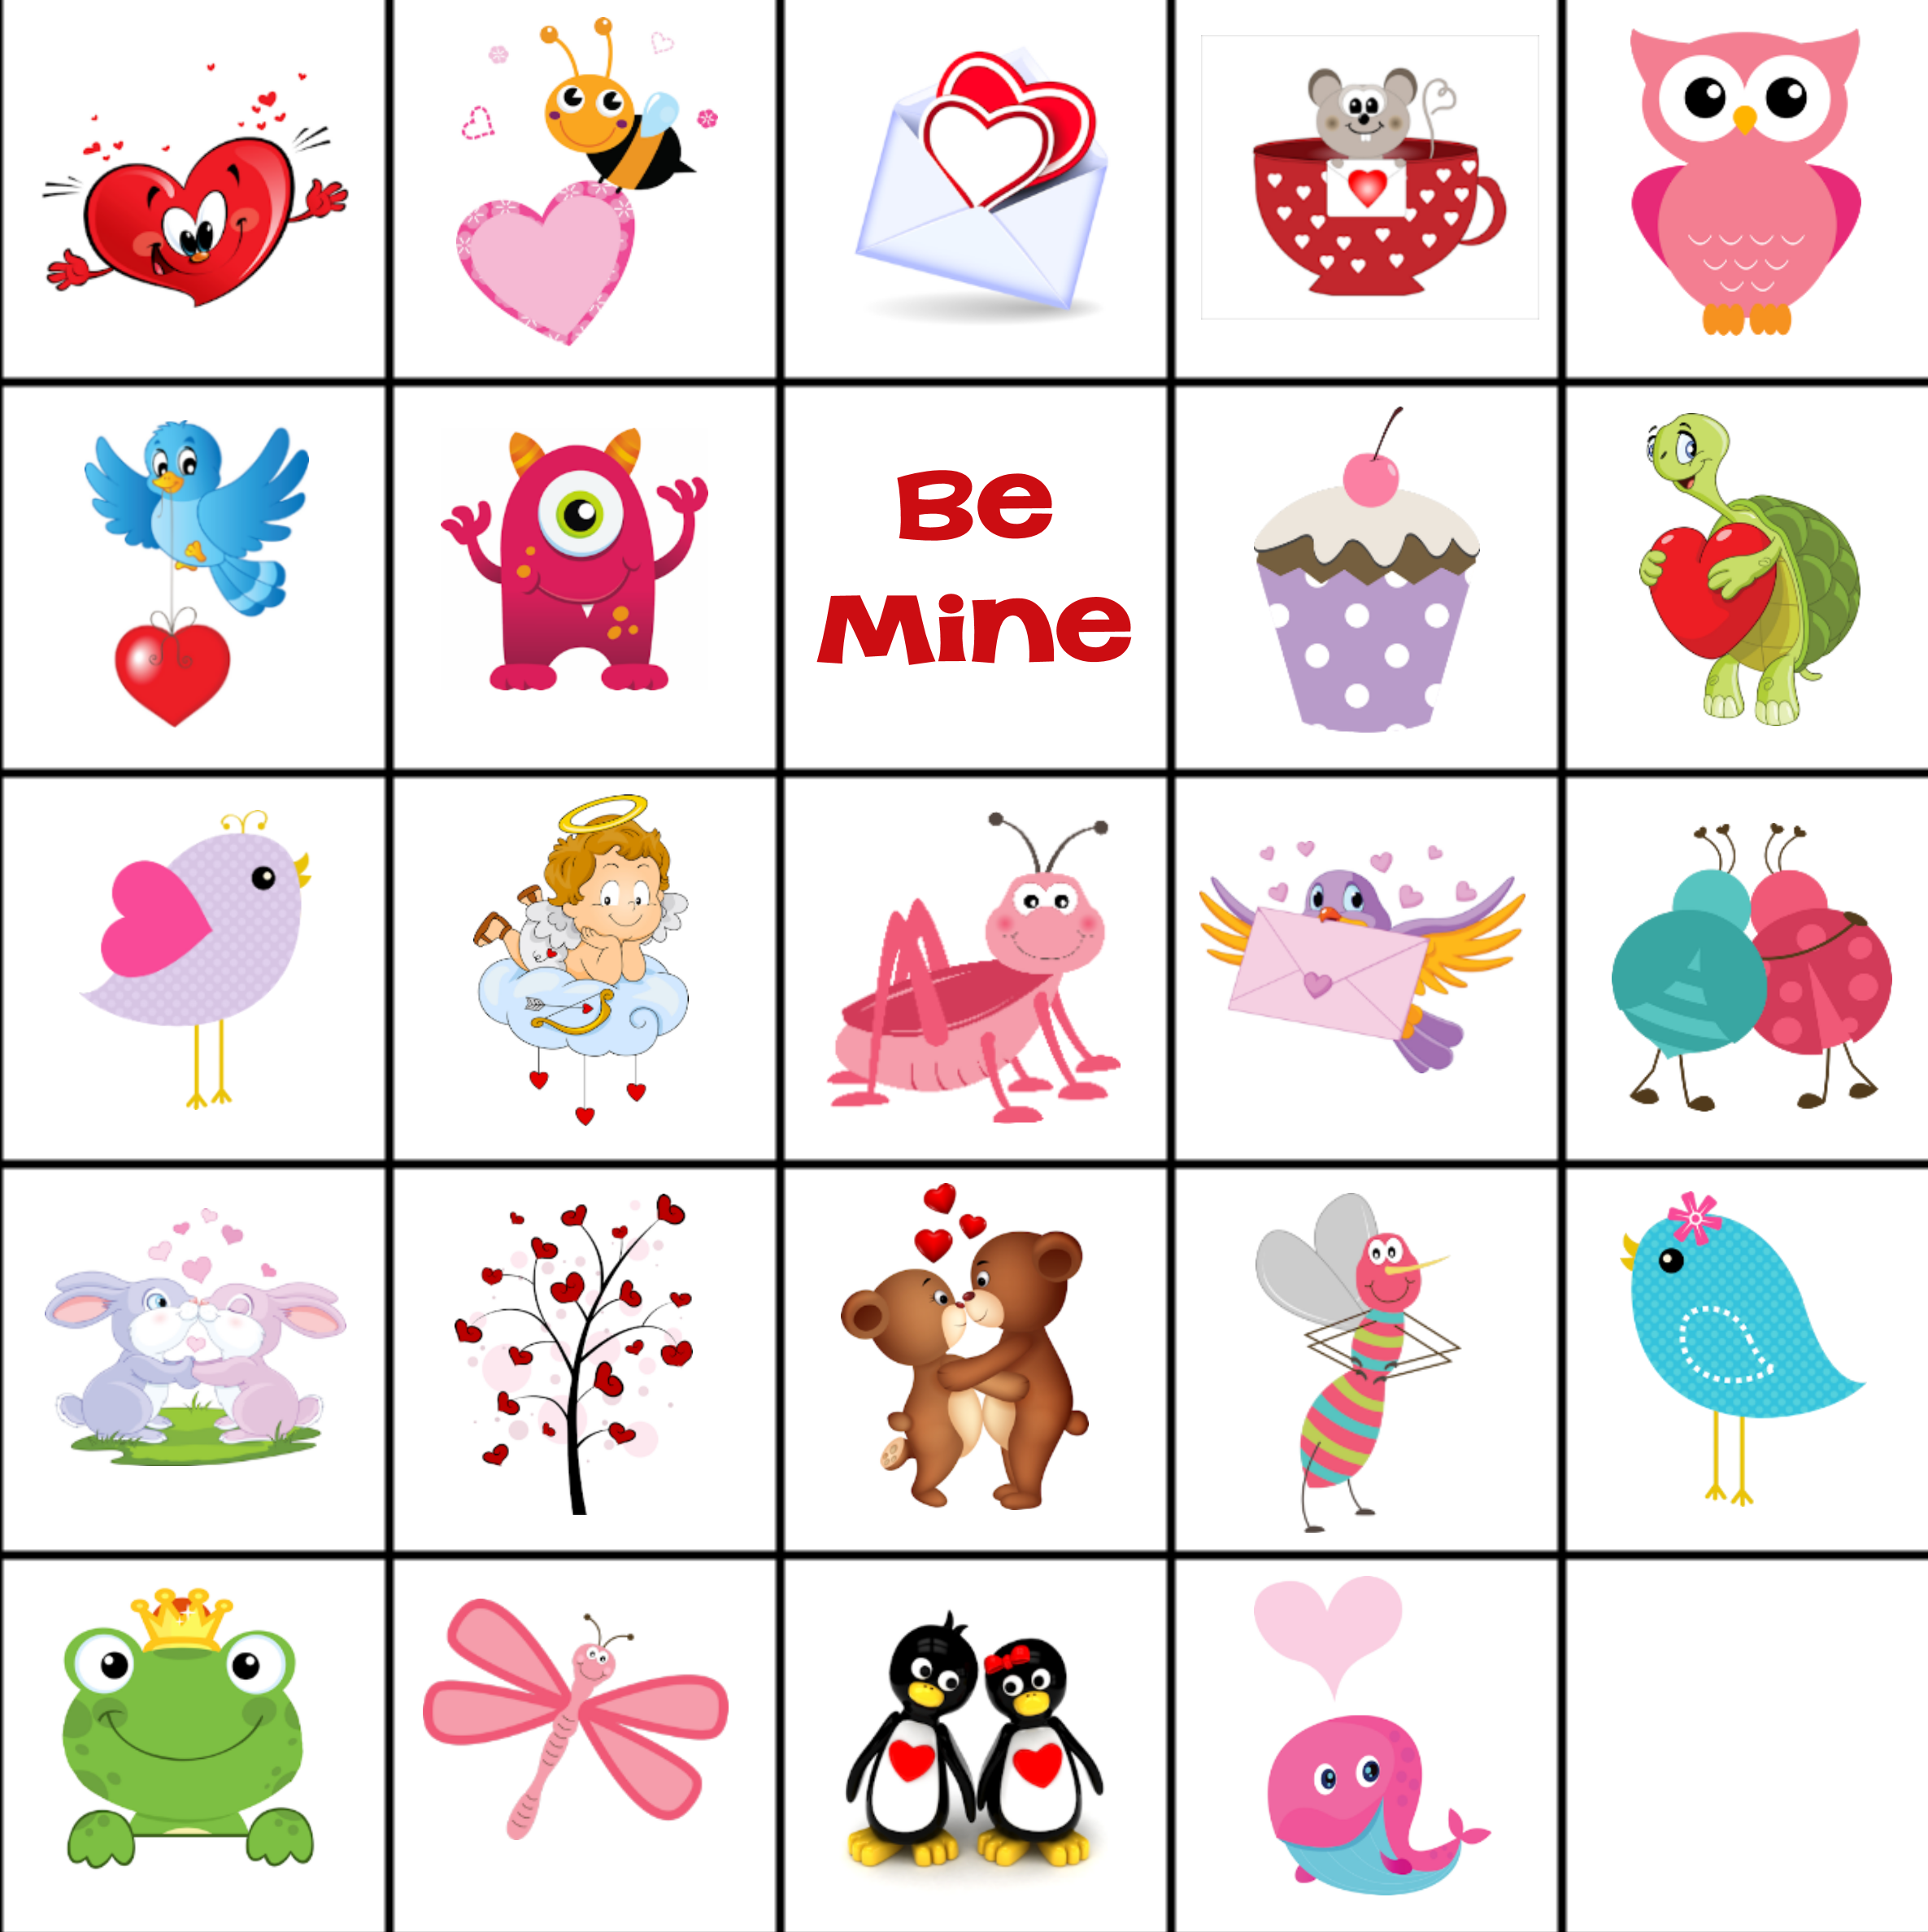 image about Printable Memory Game called Free of charge Printable Valentine Memory Recreation